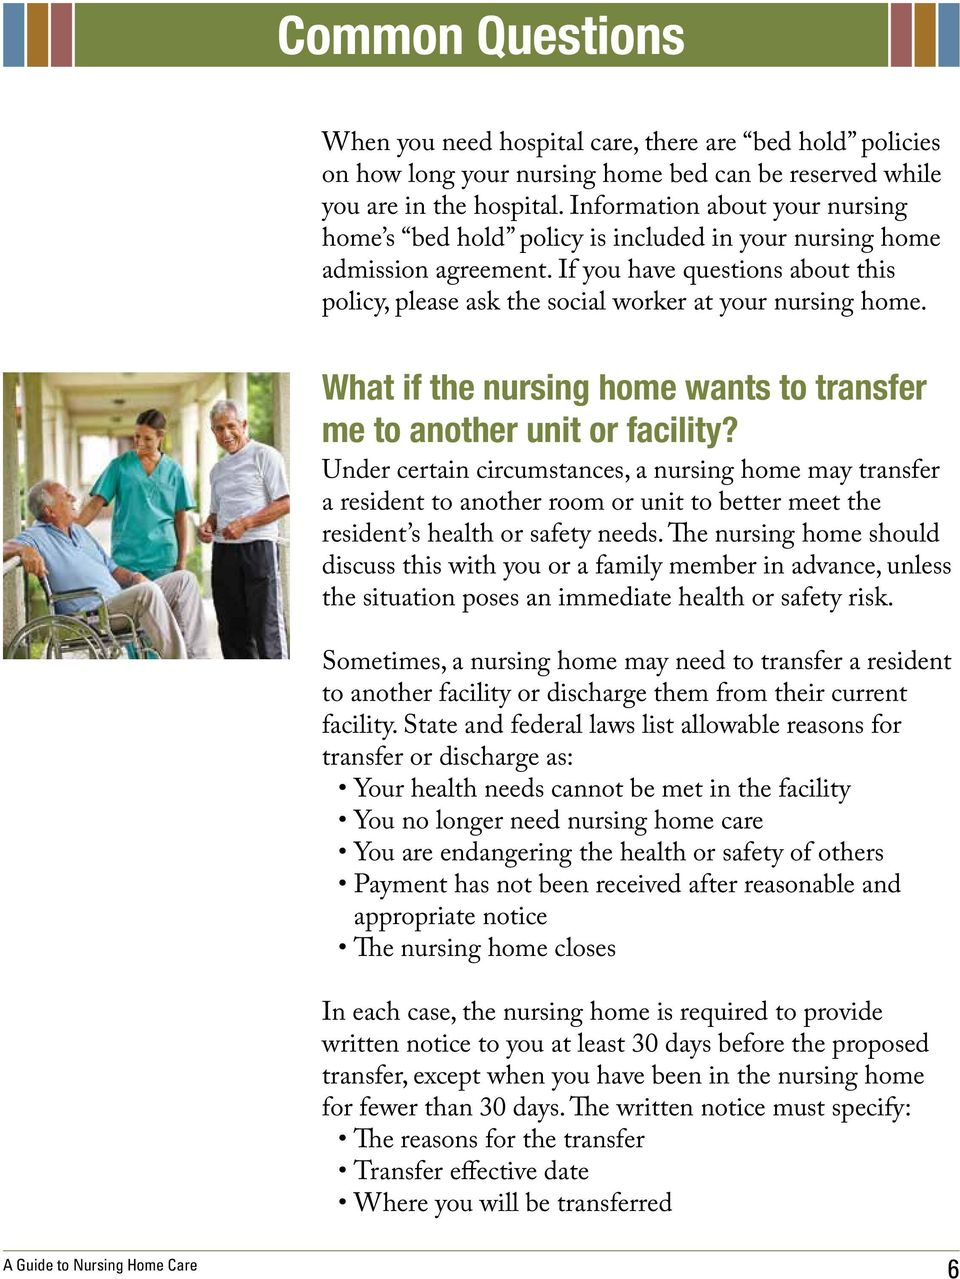 What if the nursing home wants to transfer me to another unit or facility?